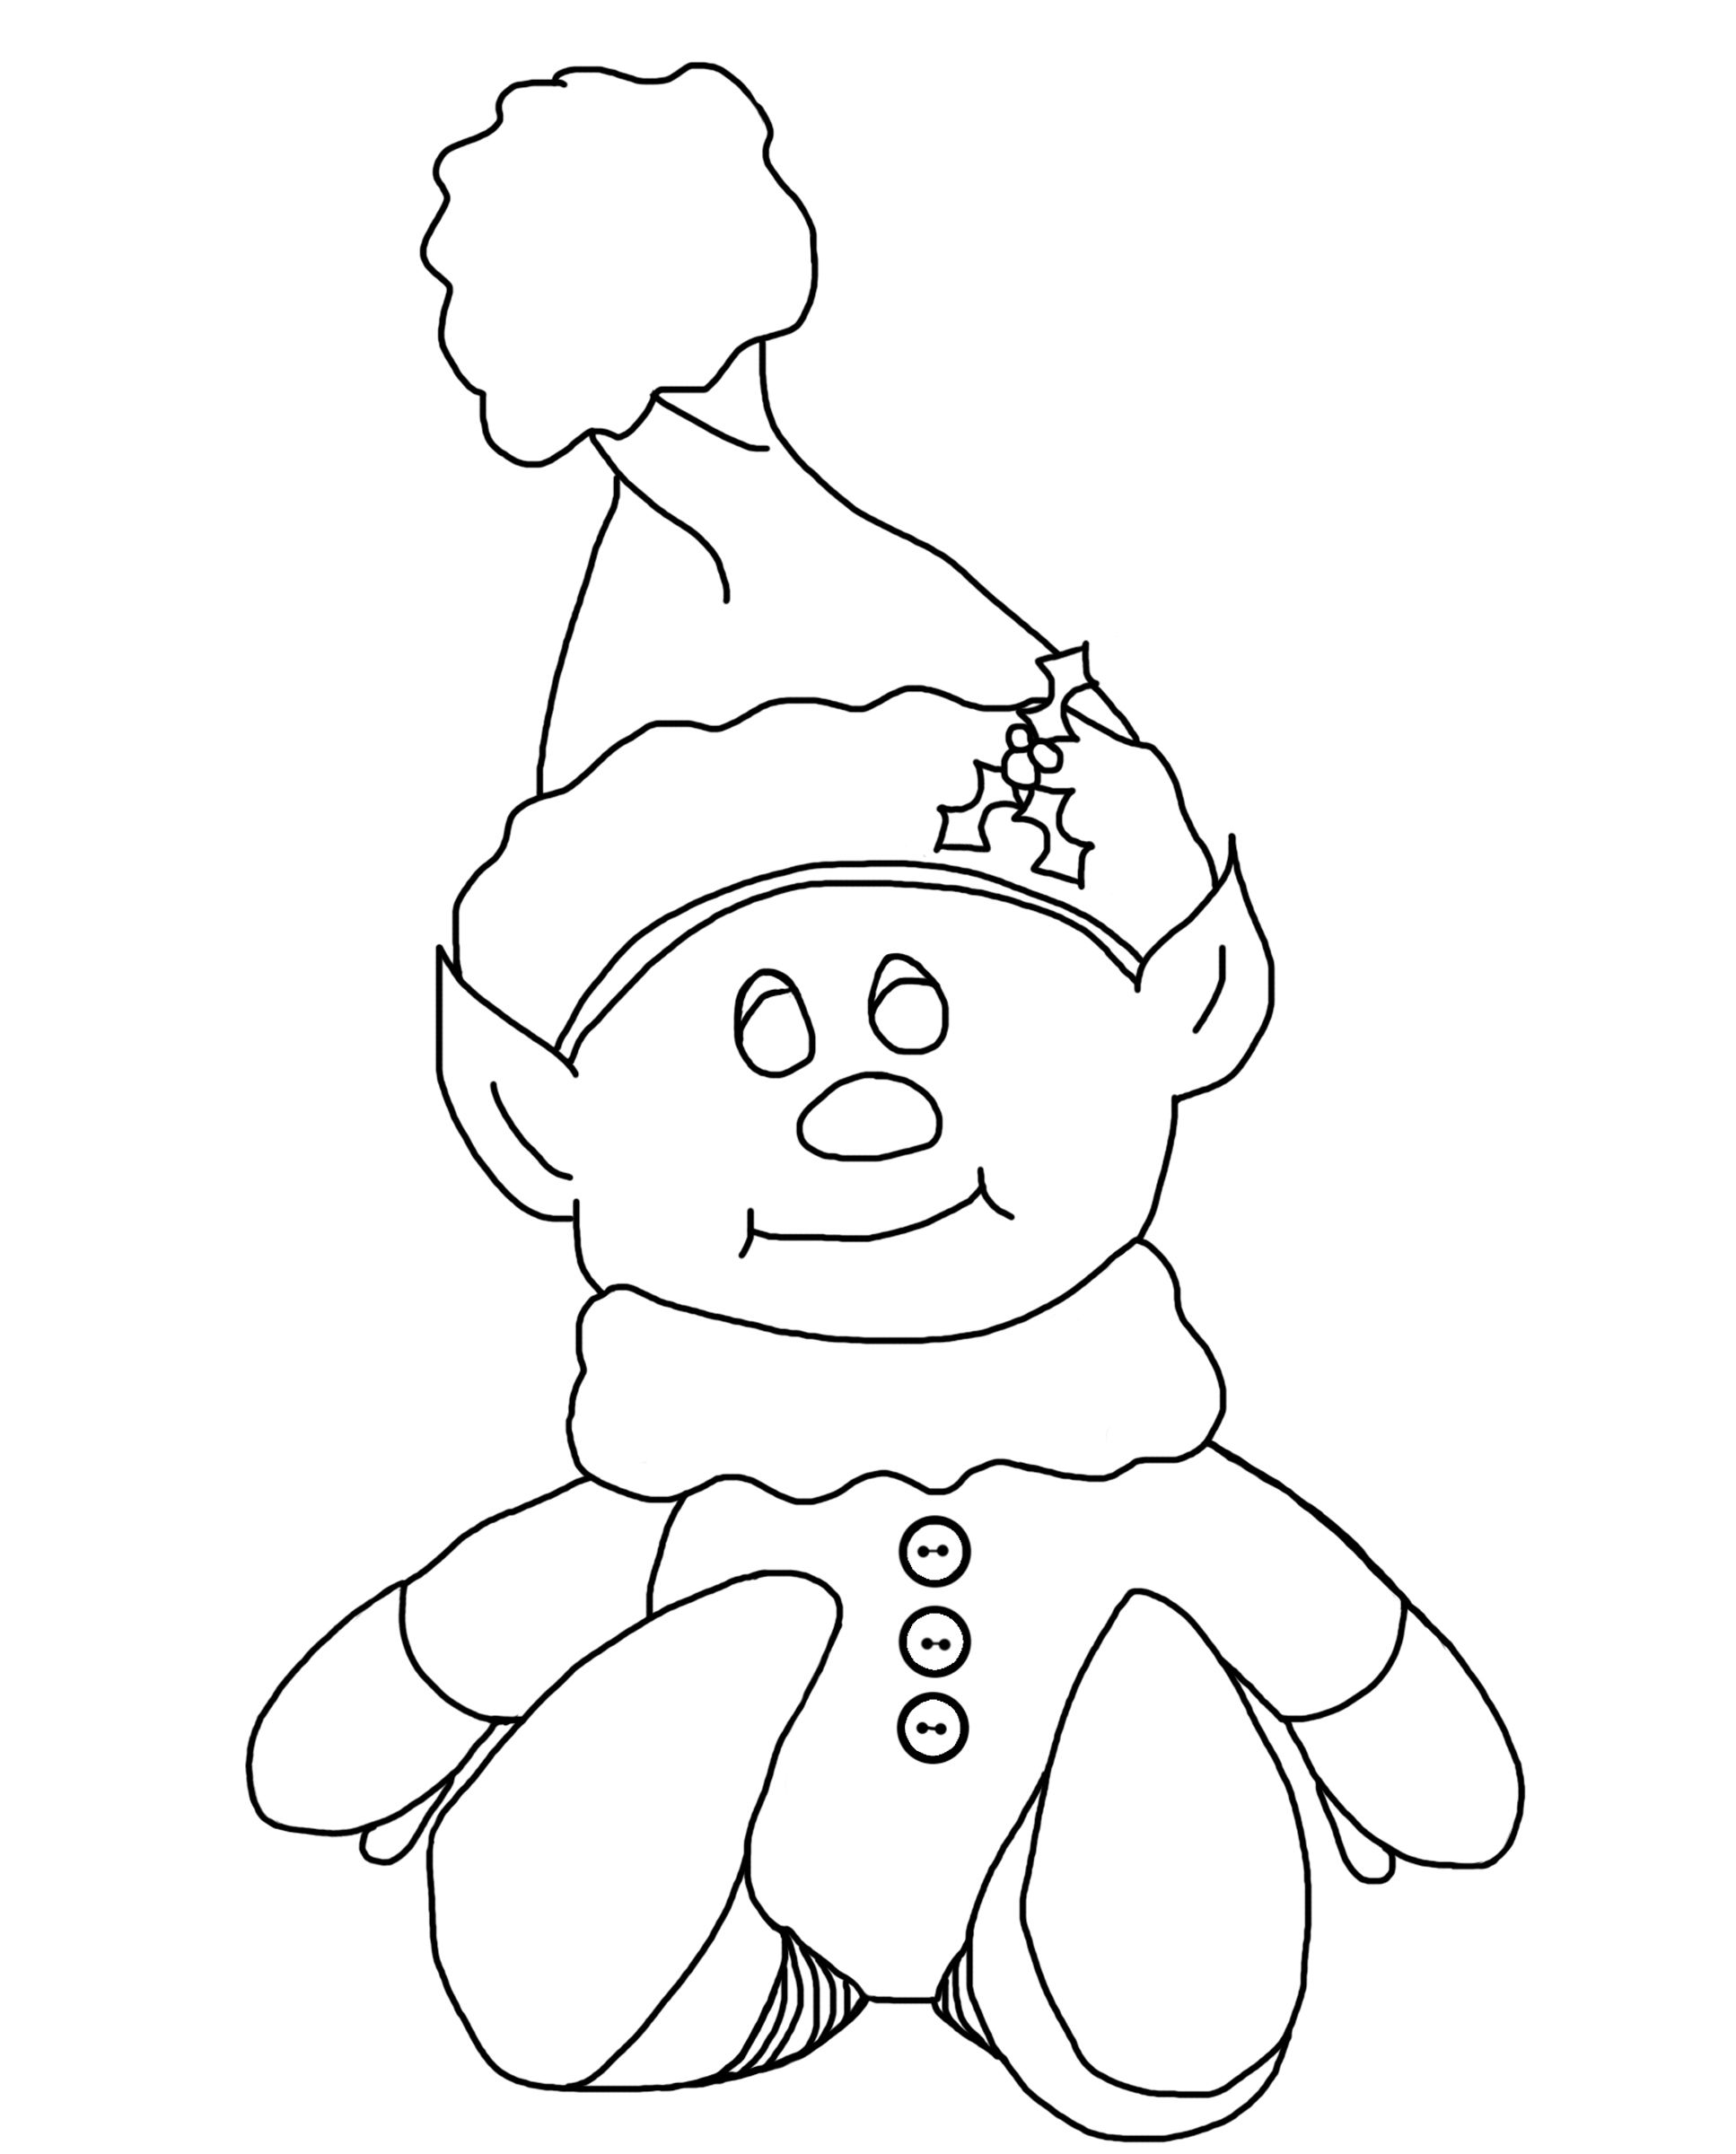 cute elf coloring pages cute elf coloring pages coloring cute pages elf